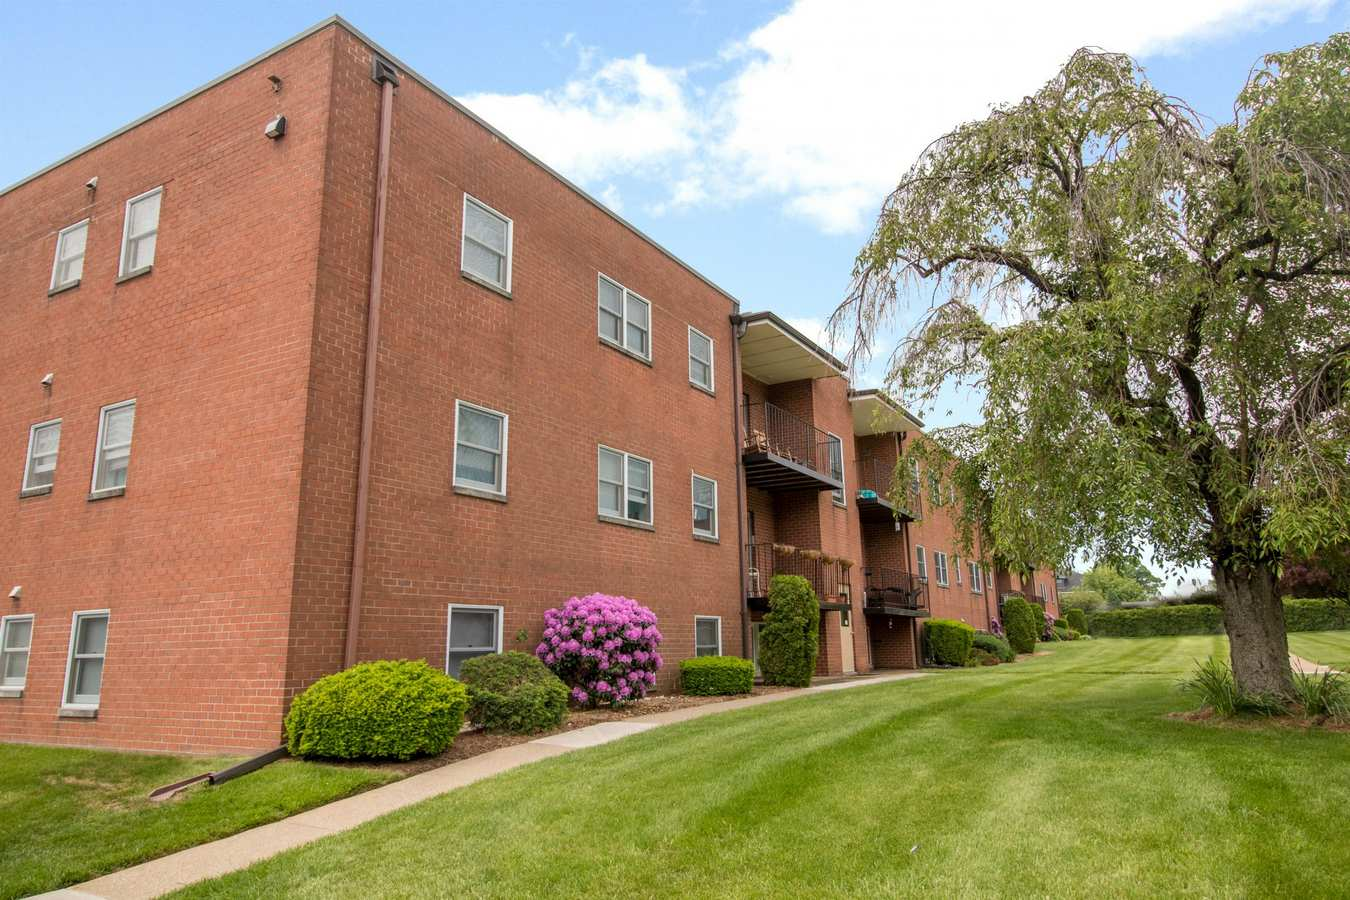 Exterior of Corliss Apartments in Phillipsburg, New Jersey